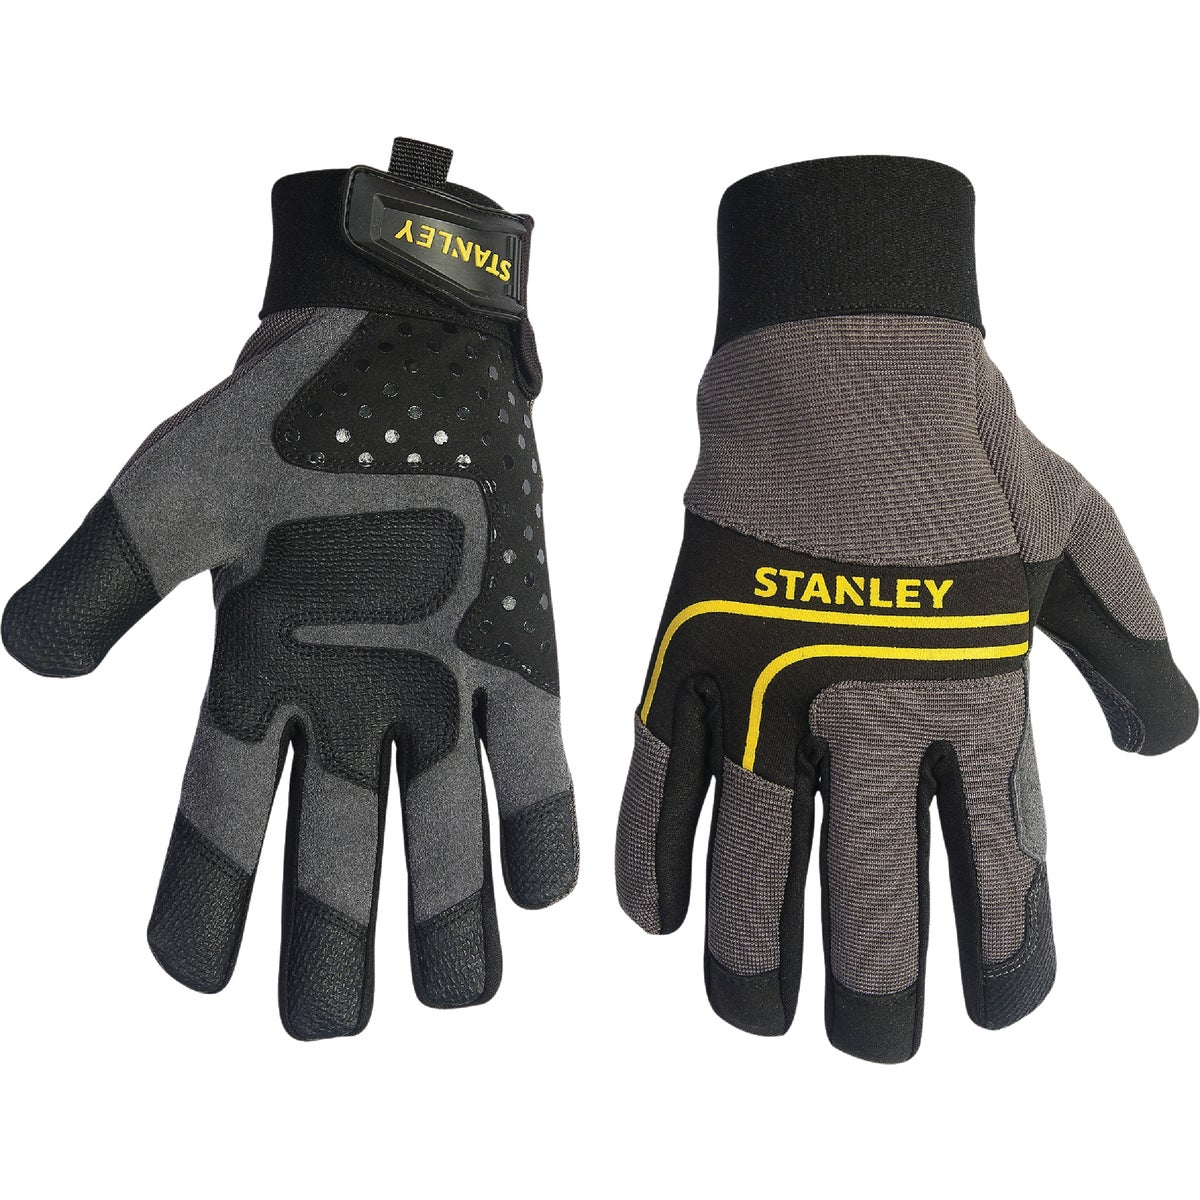 MED WORK CREW GLOVE - WCG-03-M by Ironclad Performance